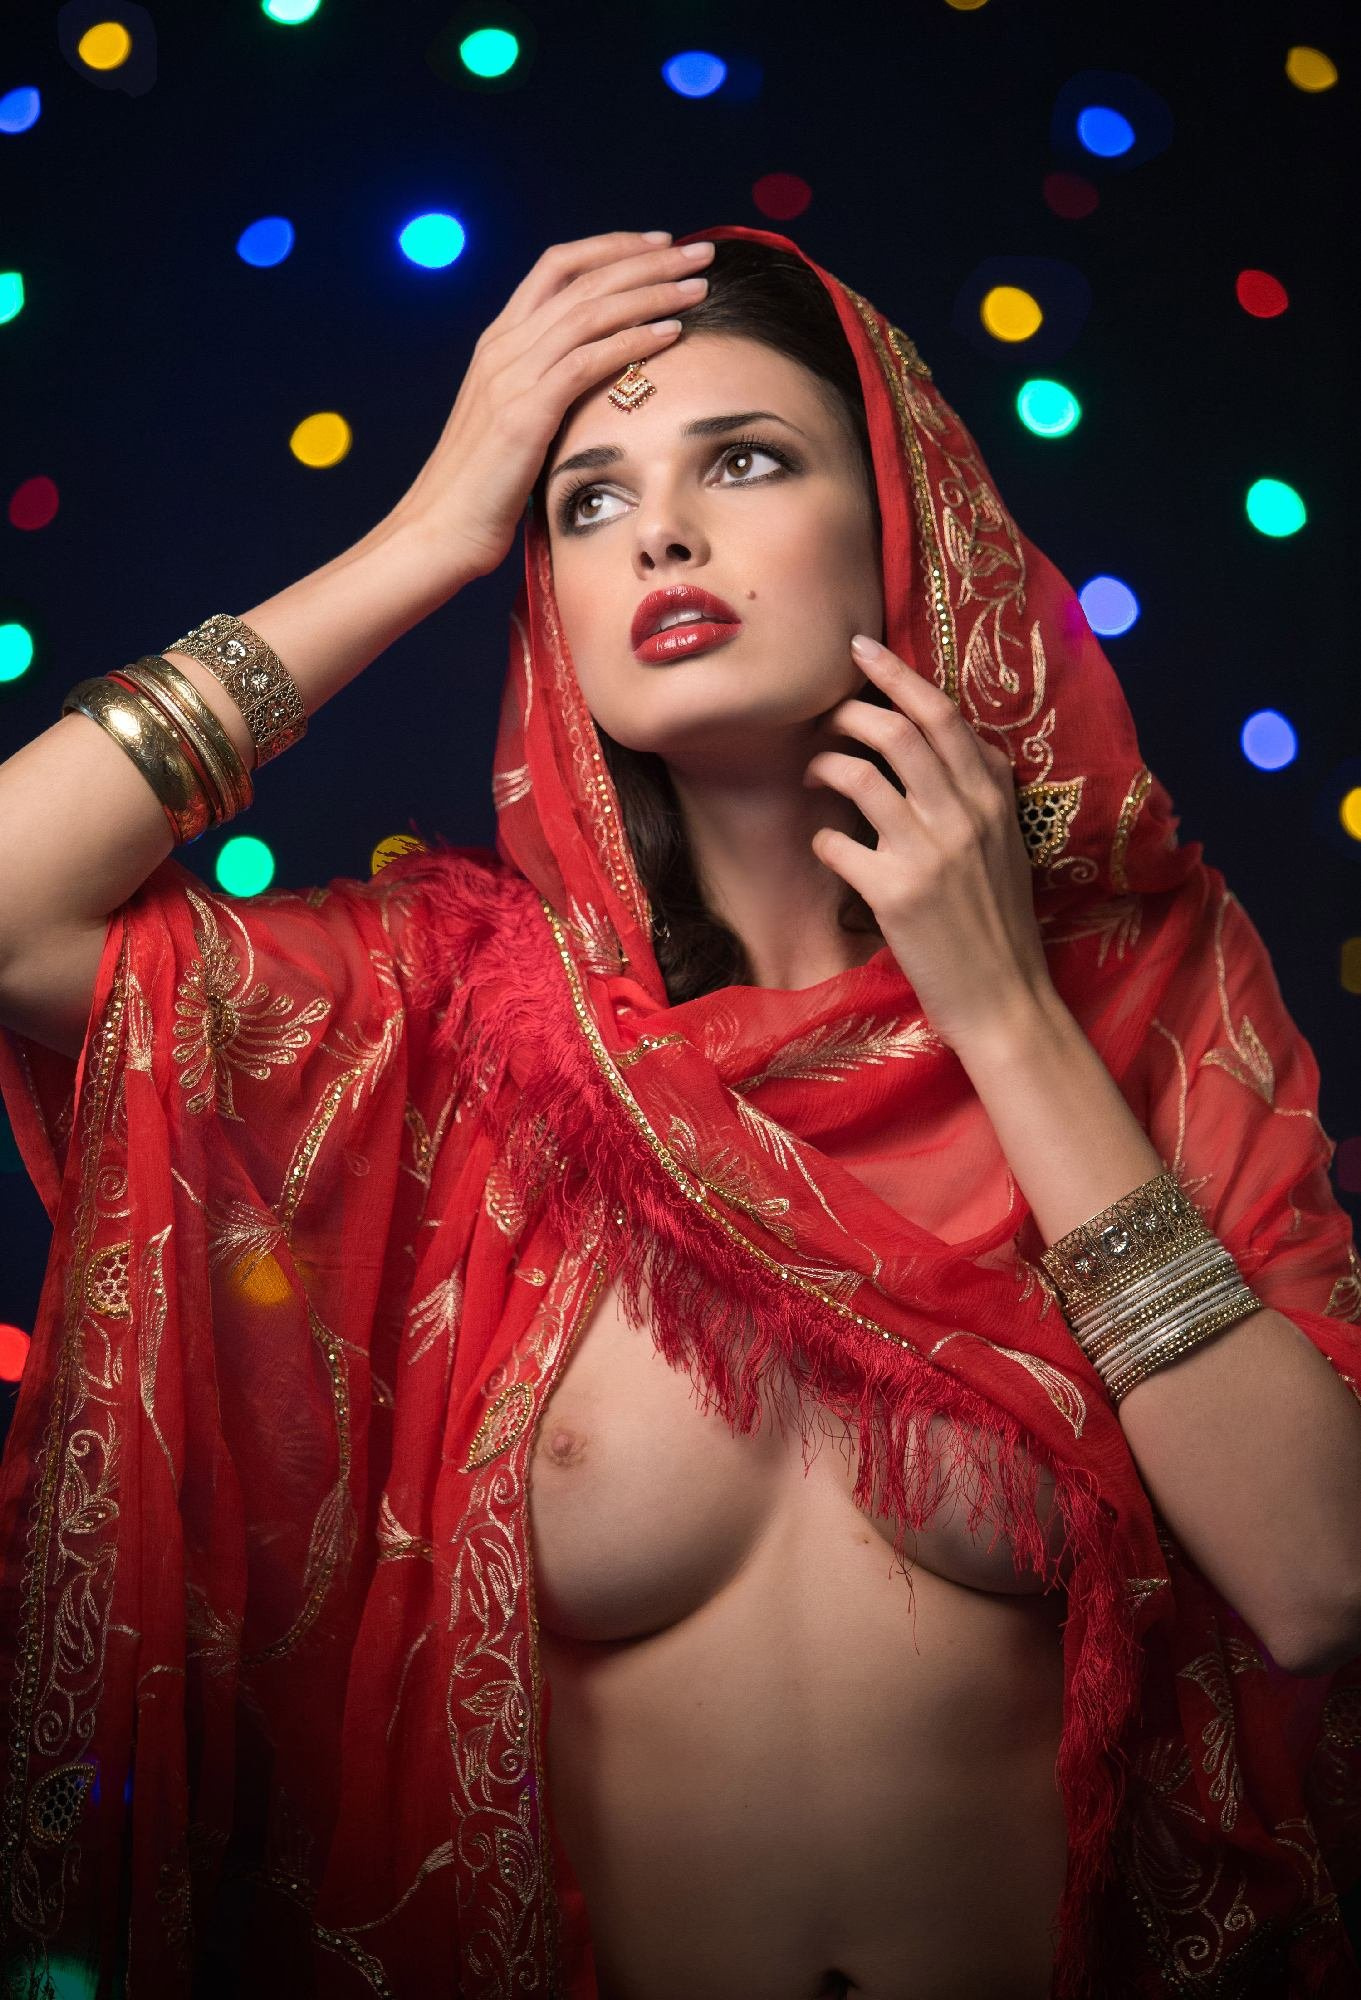 nude-red-indian-women-photos